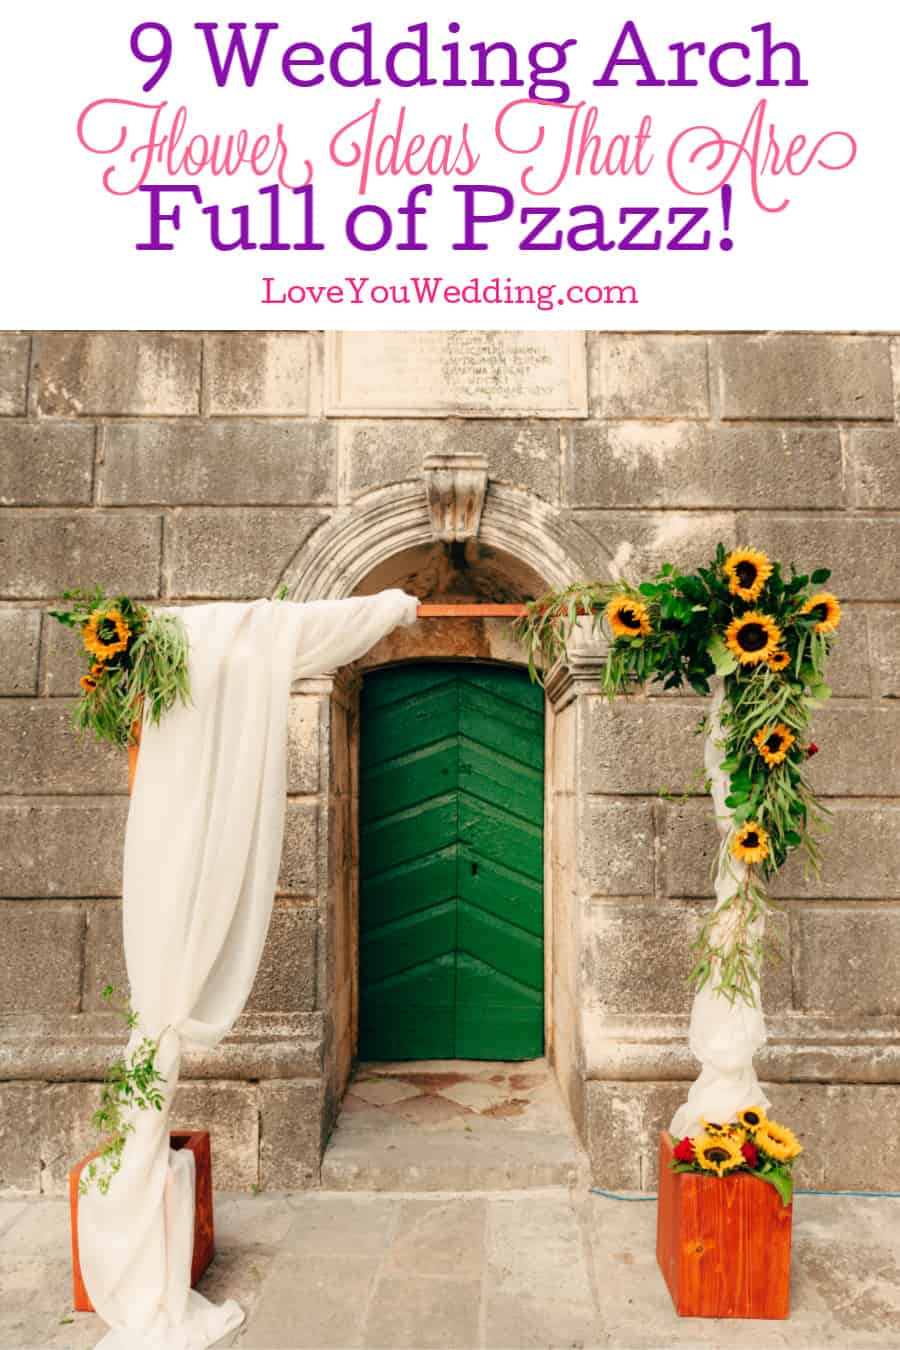 These beautiful wedding arch flower ideas give a plain rented arch a whole lot of pzazz. Check them out and get ready to be inspired!